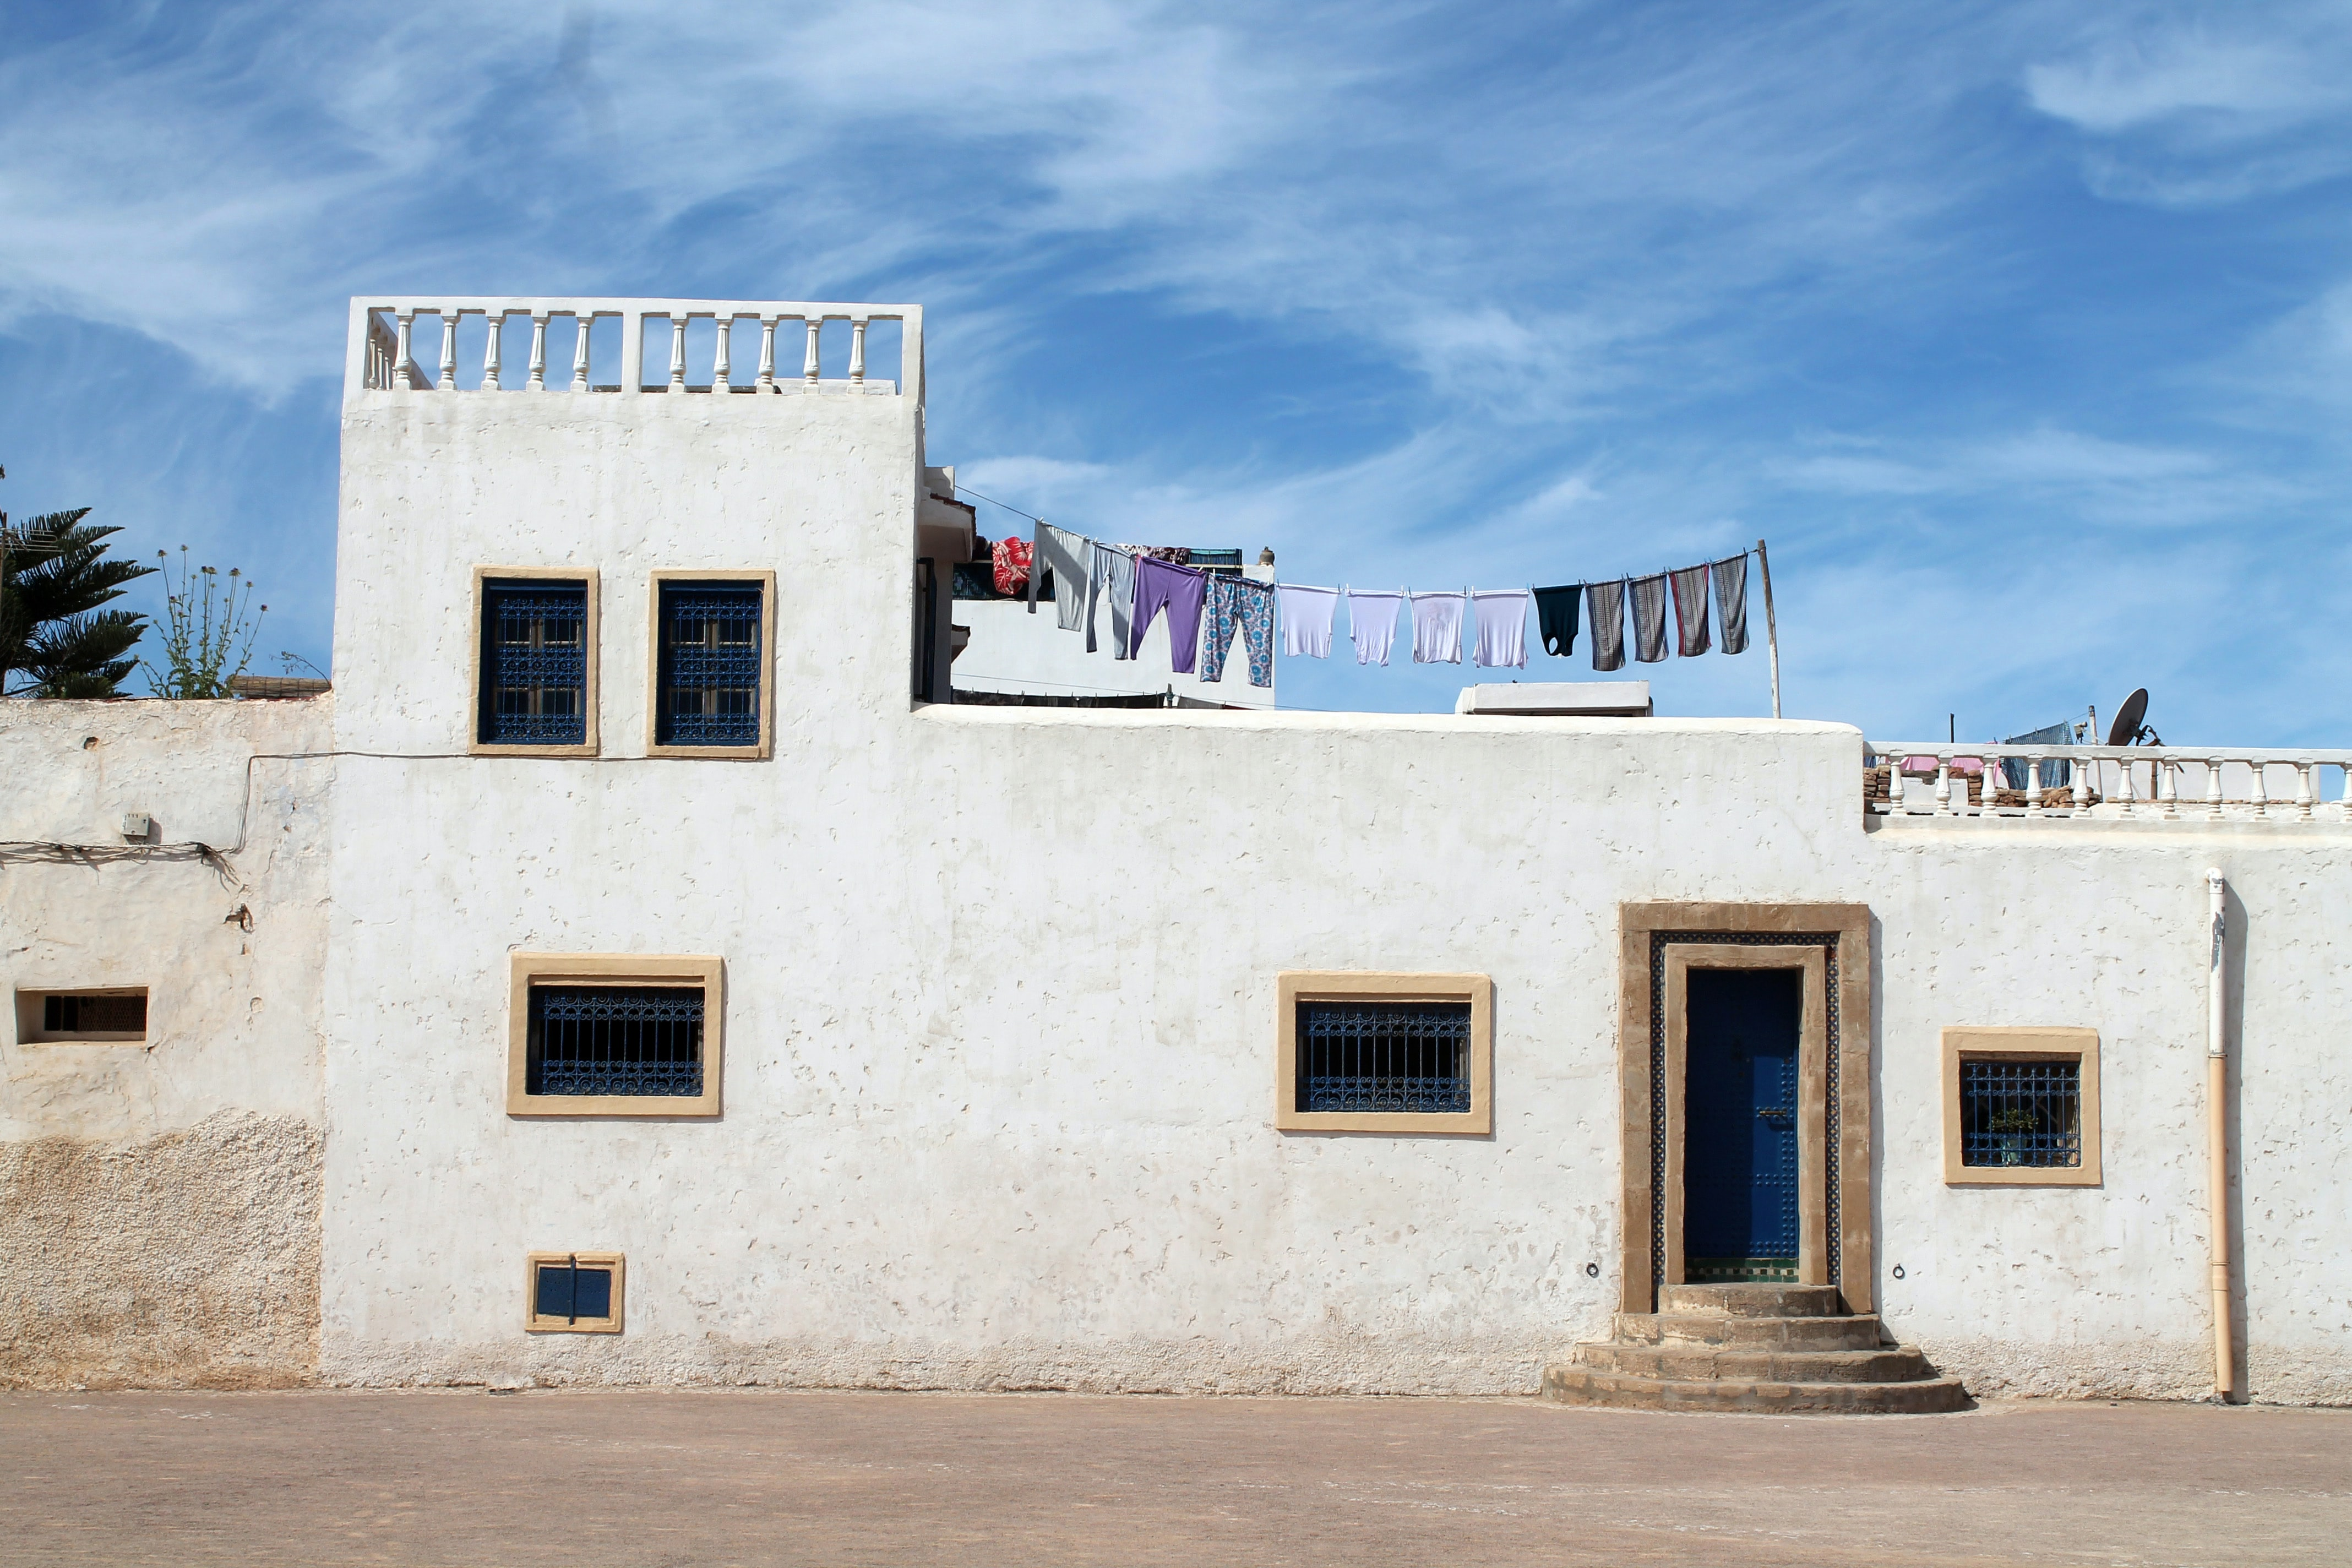 A house in Rabat Medina with clothing hanging from a rooftop clothesline